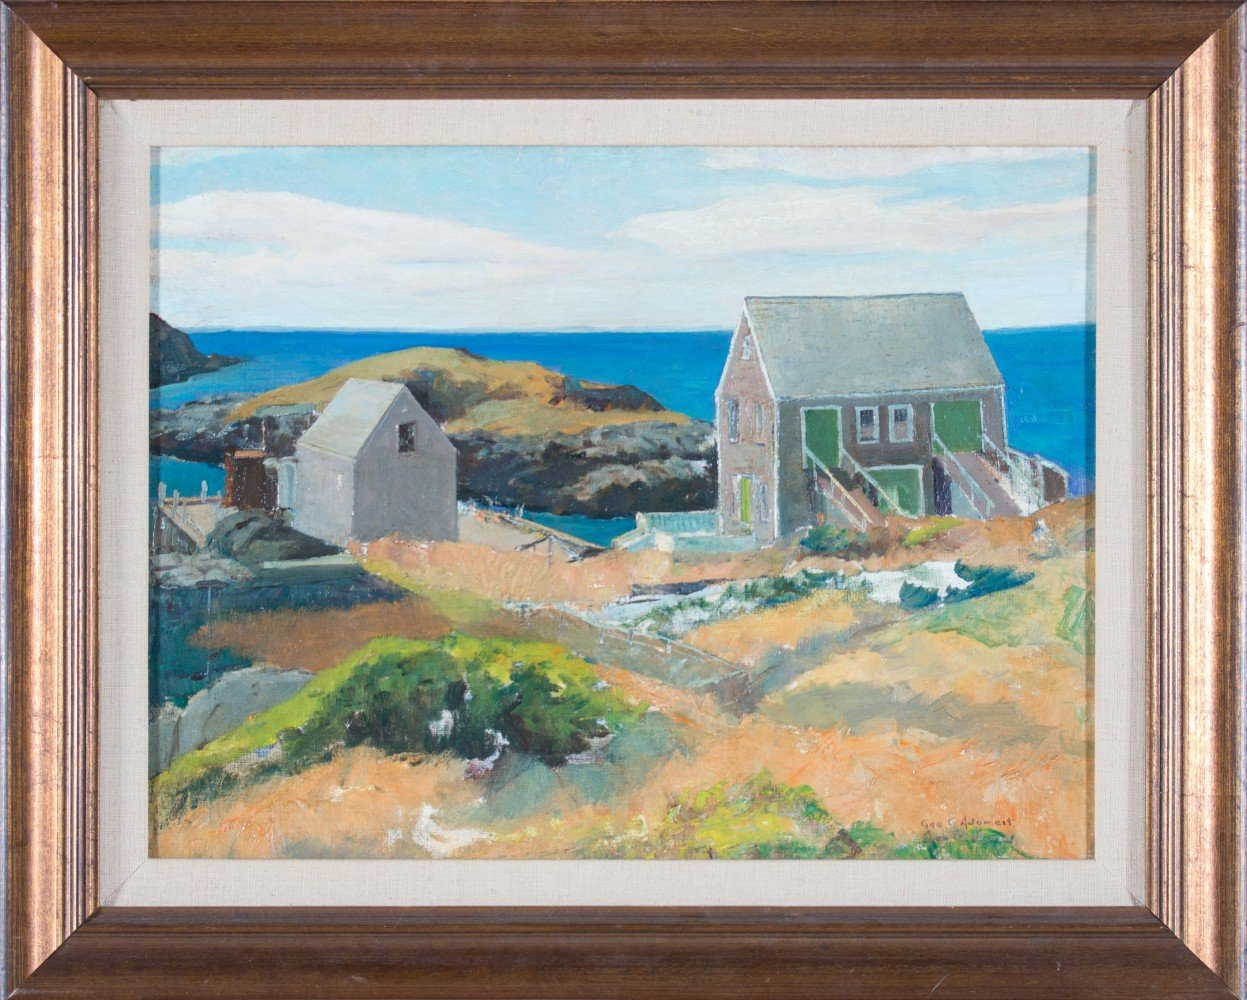 Monhegan Island, Maine by George Gustav Adomeit